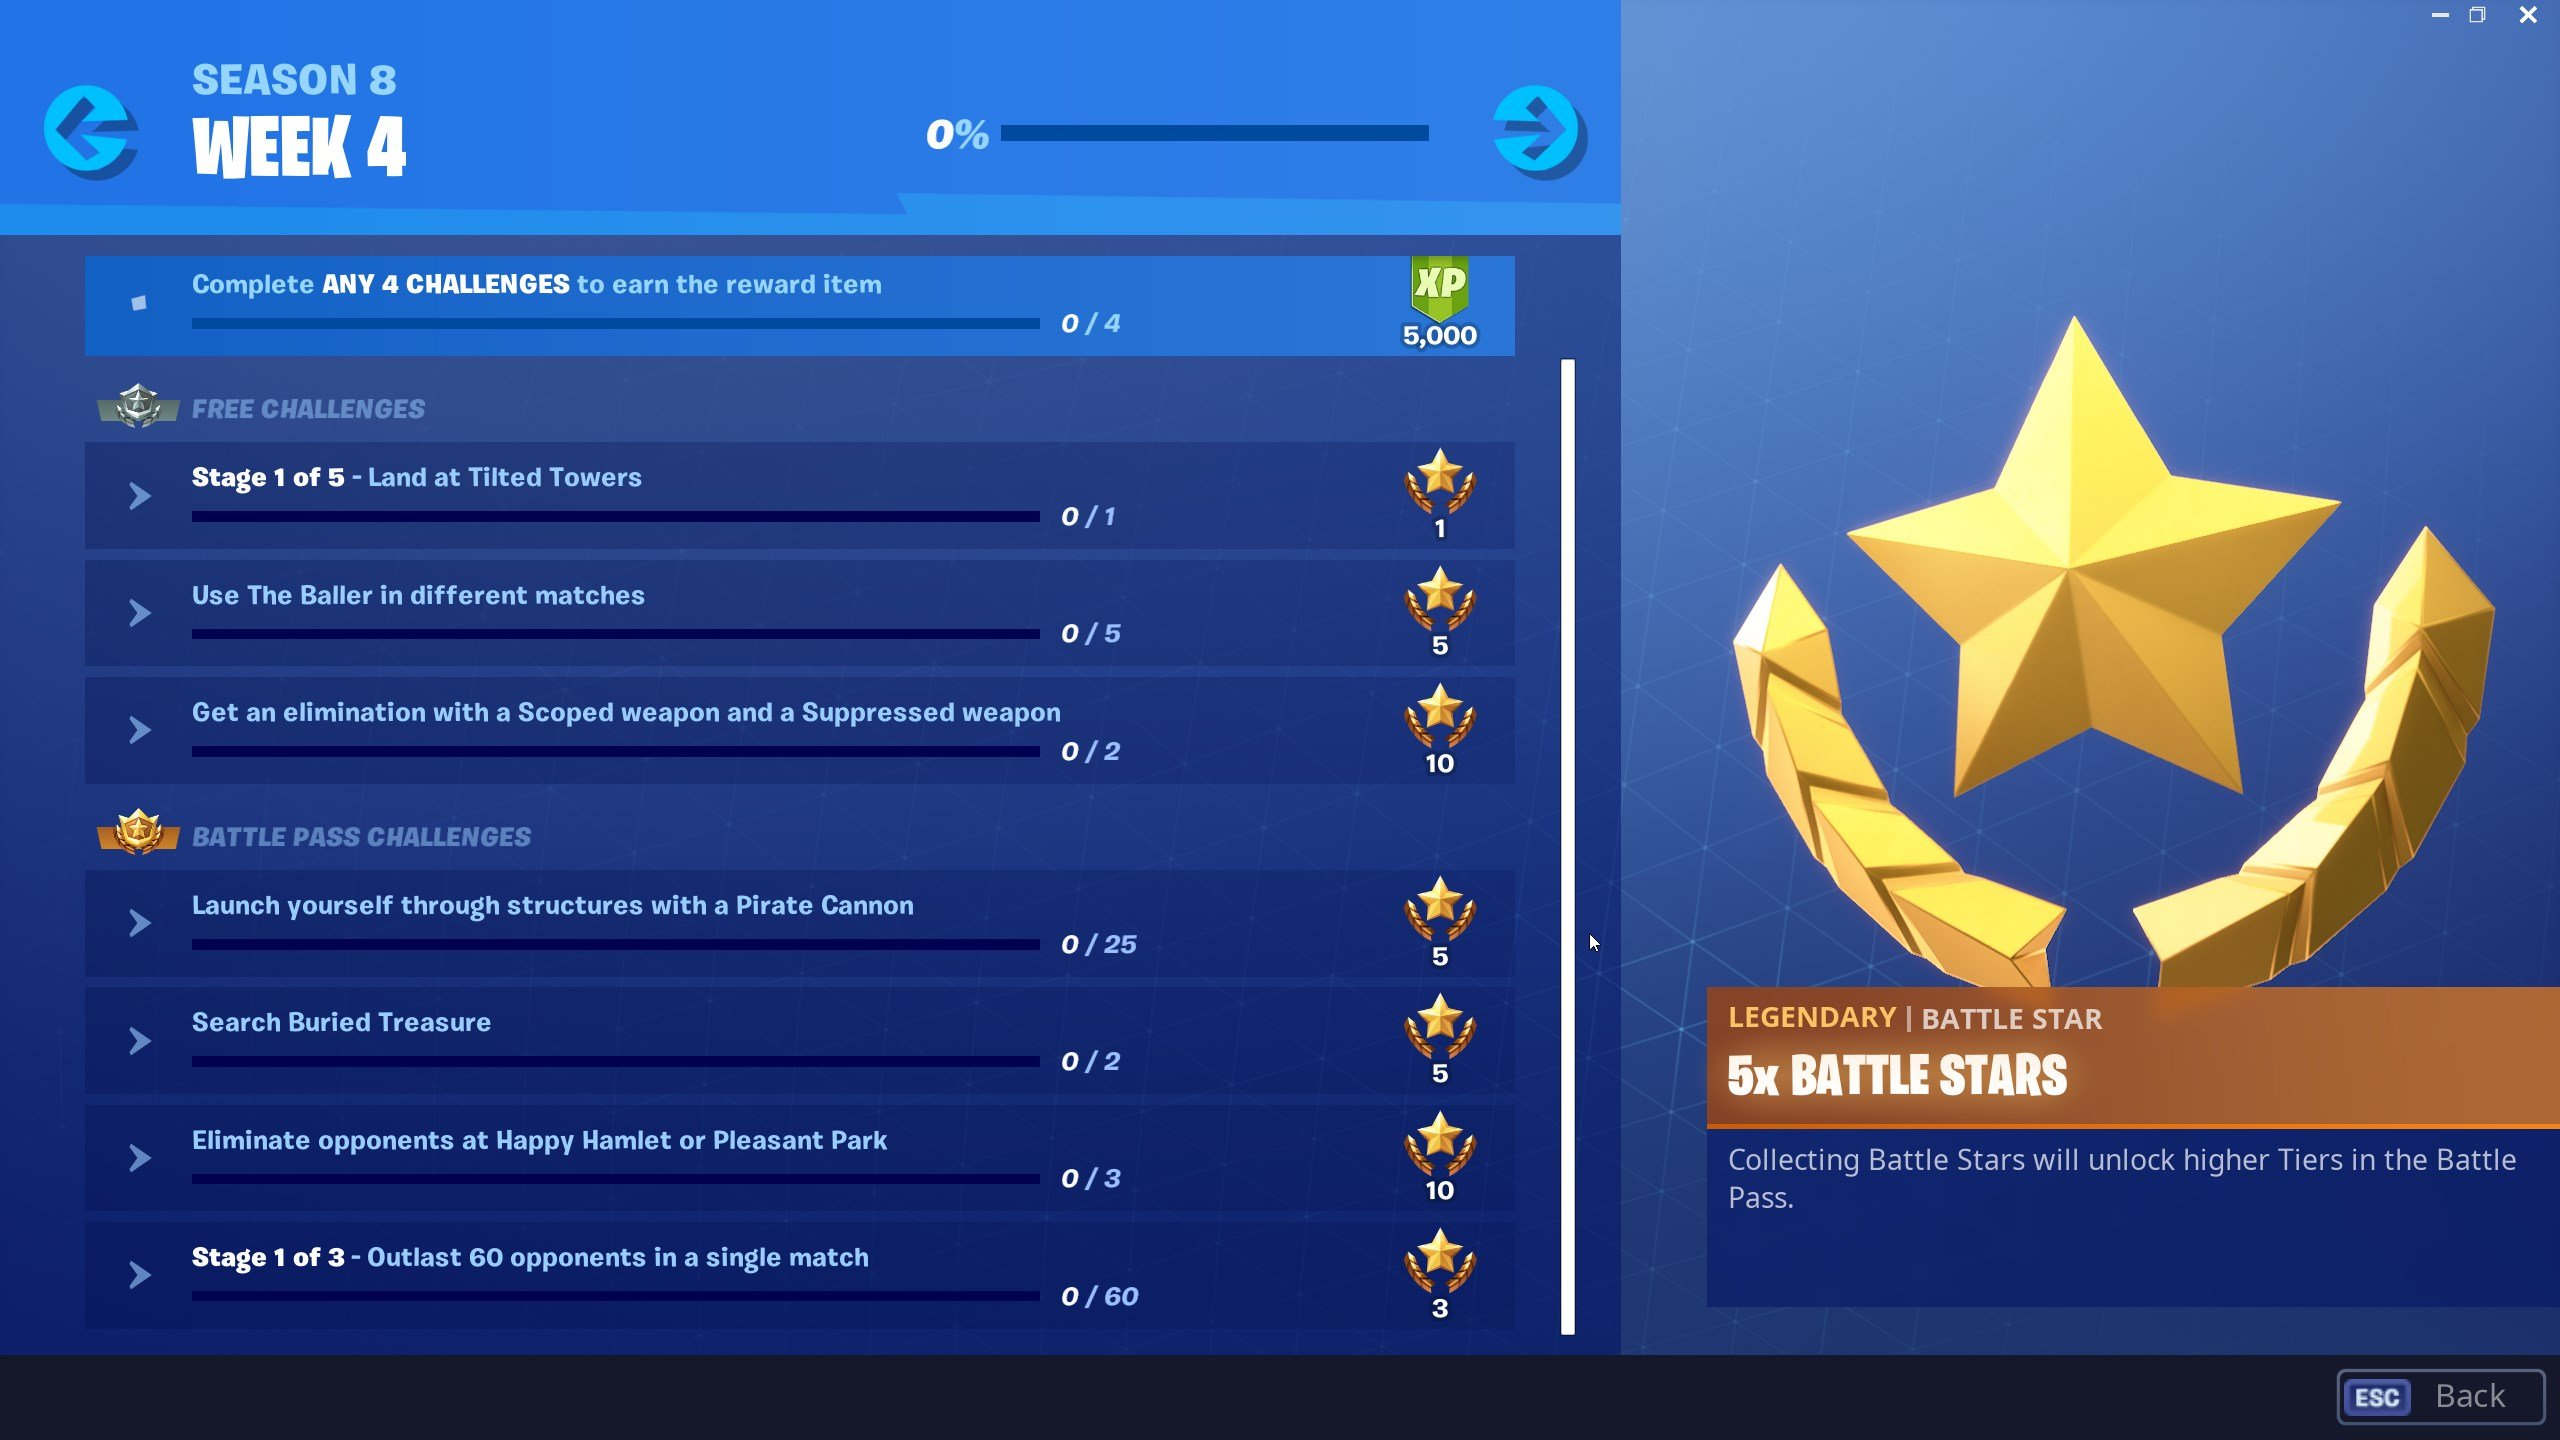 search for buried treasure - fortnite season 8 challenges